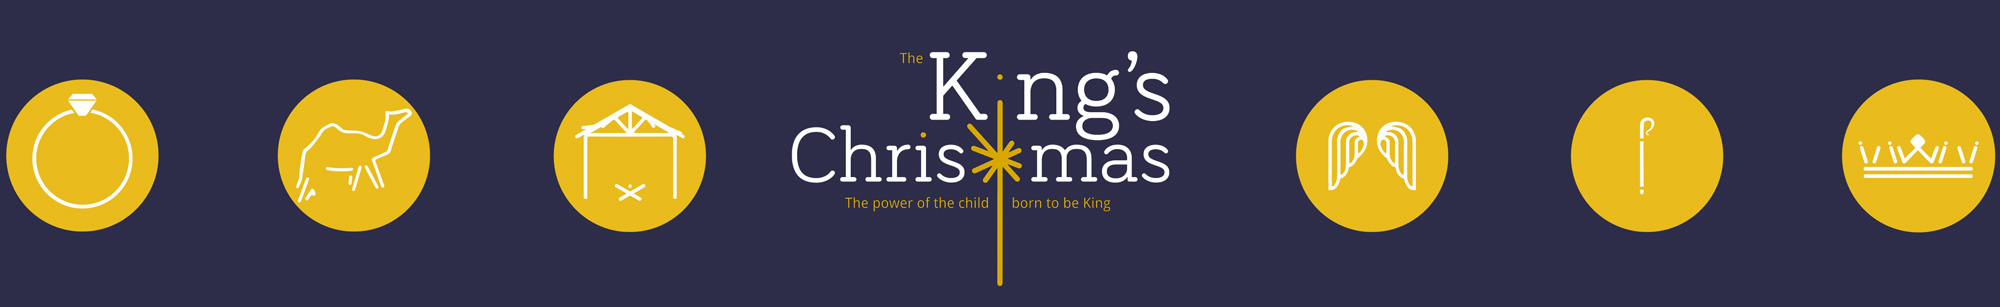 kings-christmas-winchester2